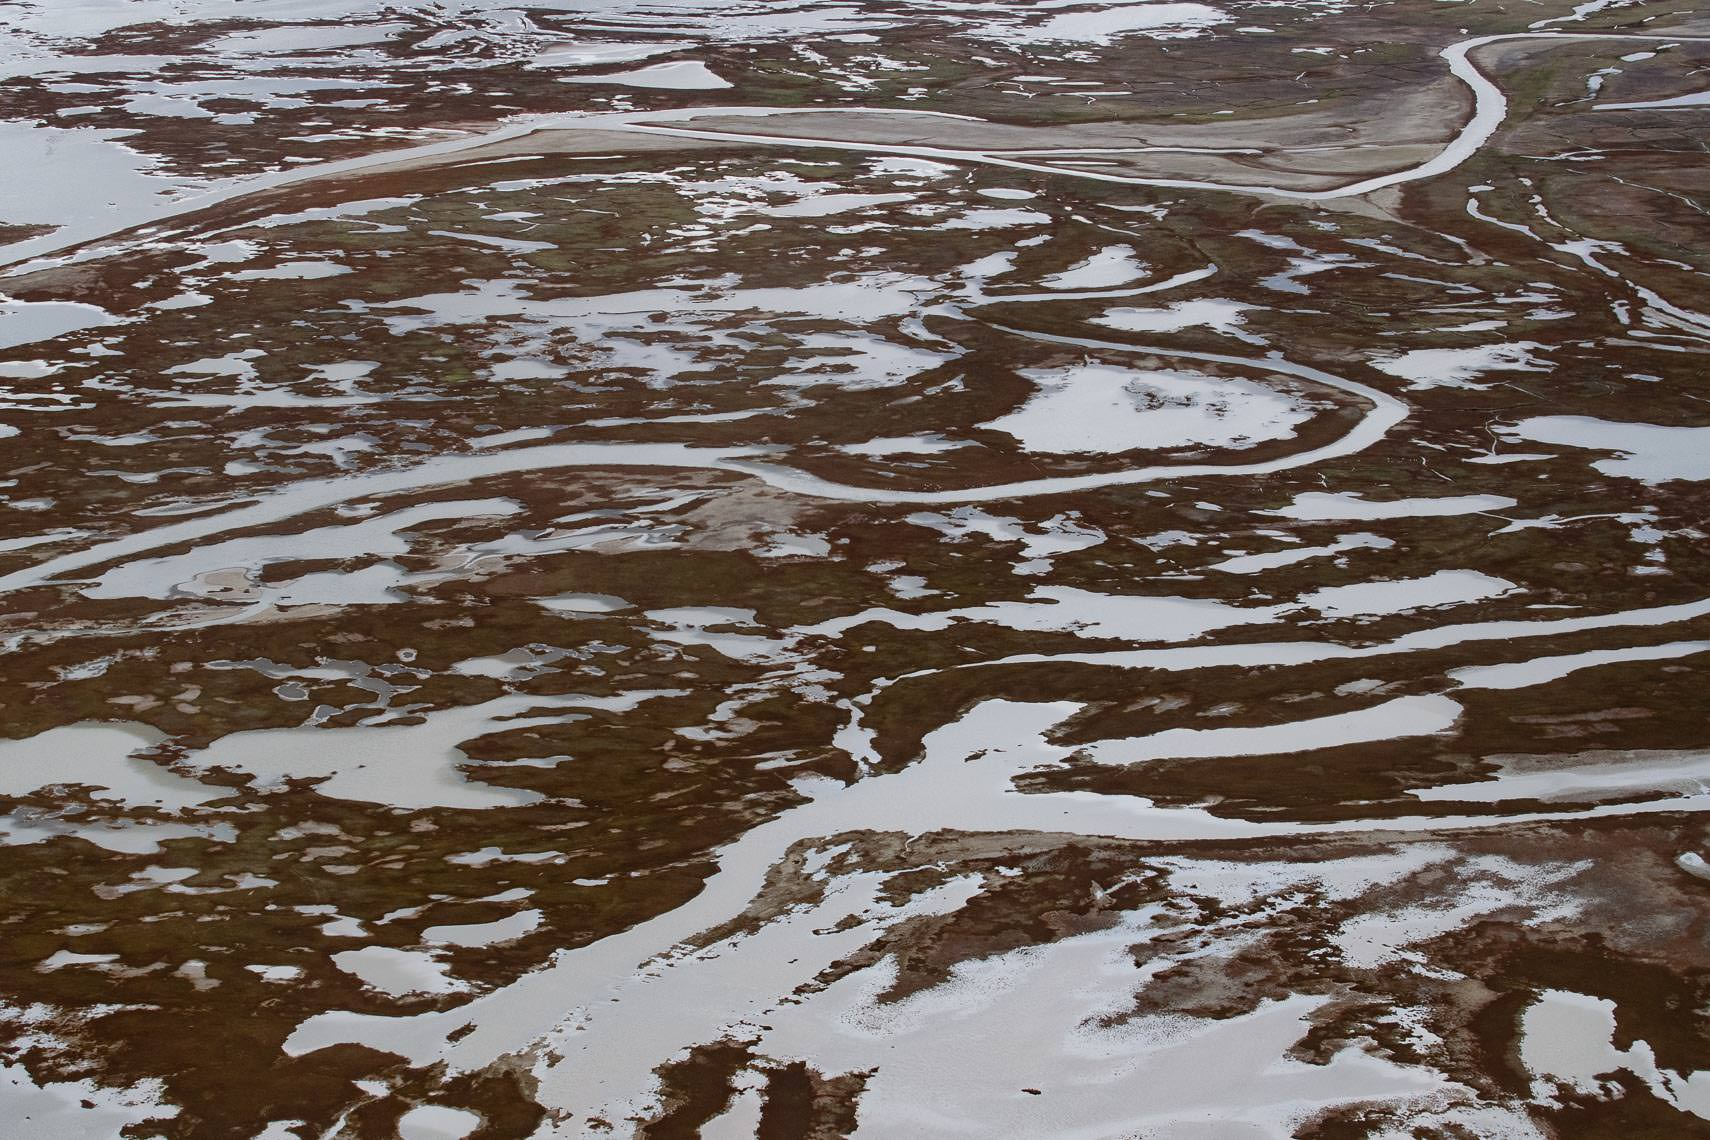 Intertidal Arctic Floodplain